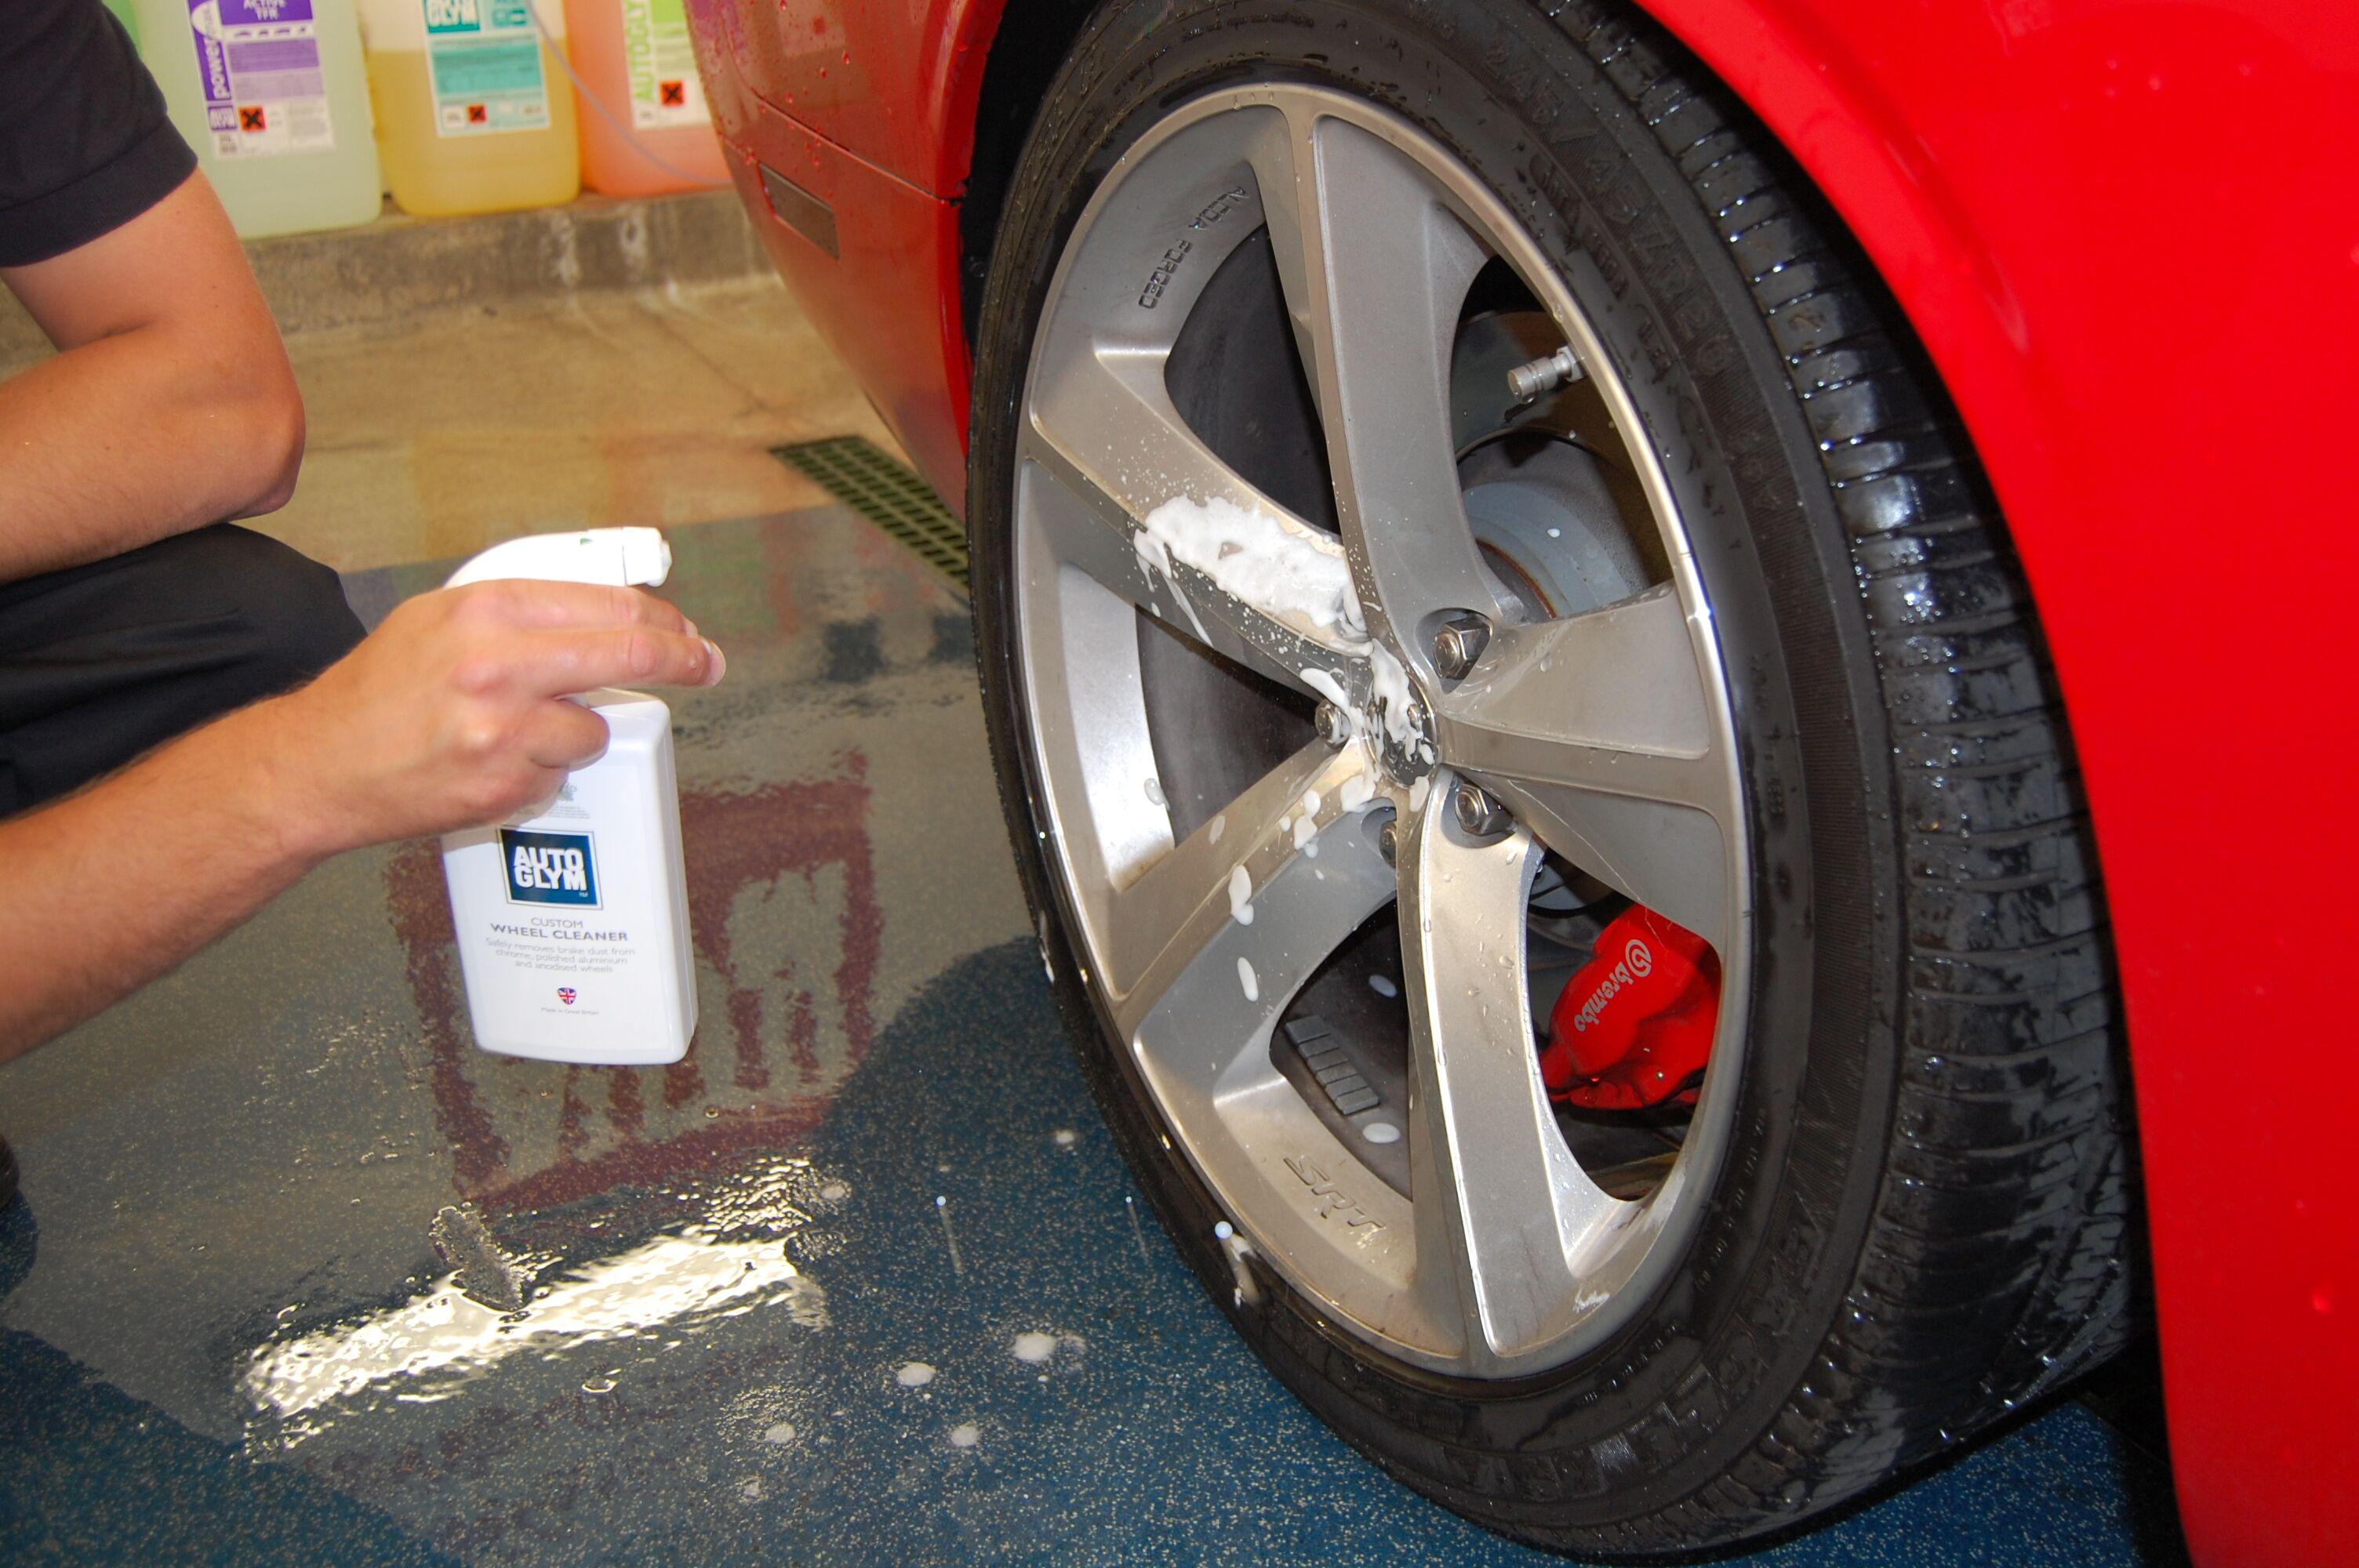 Custom Wheel Cleaner is an essential tool in the war on grubby alloys